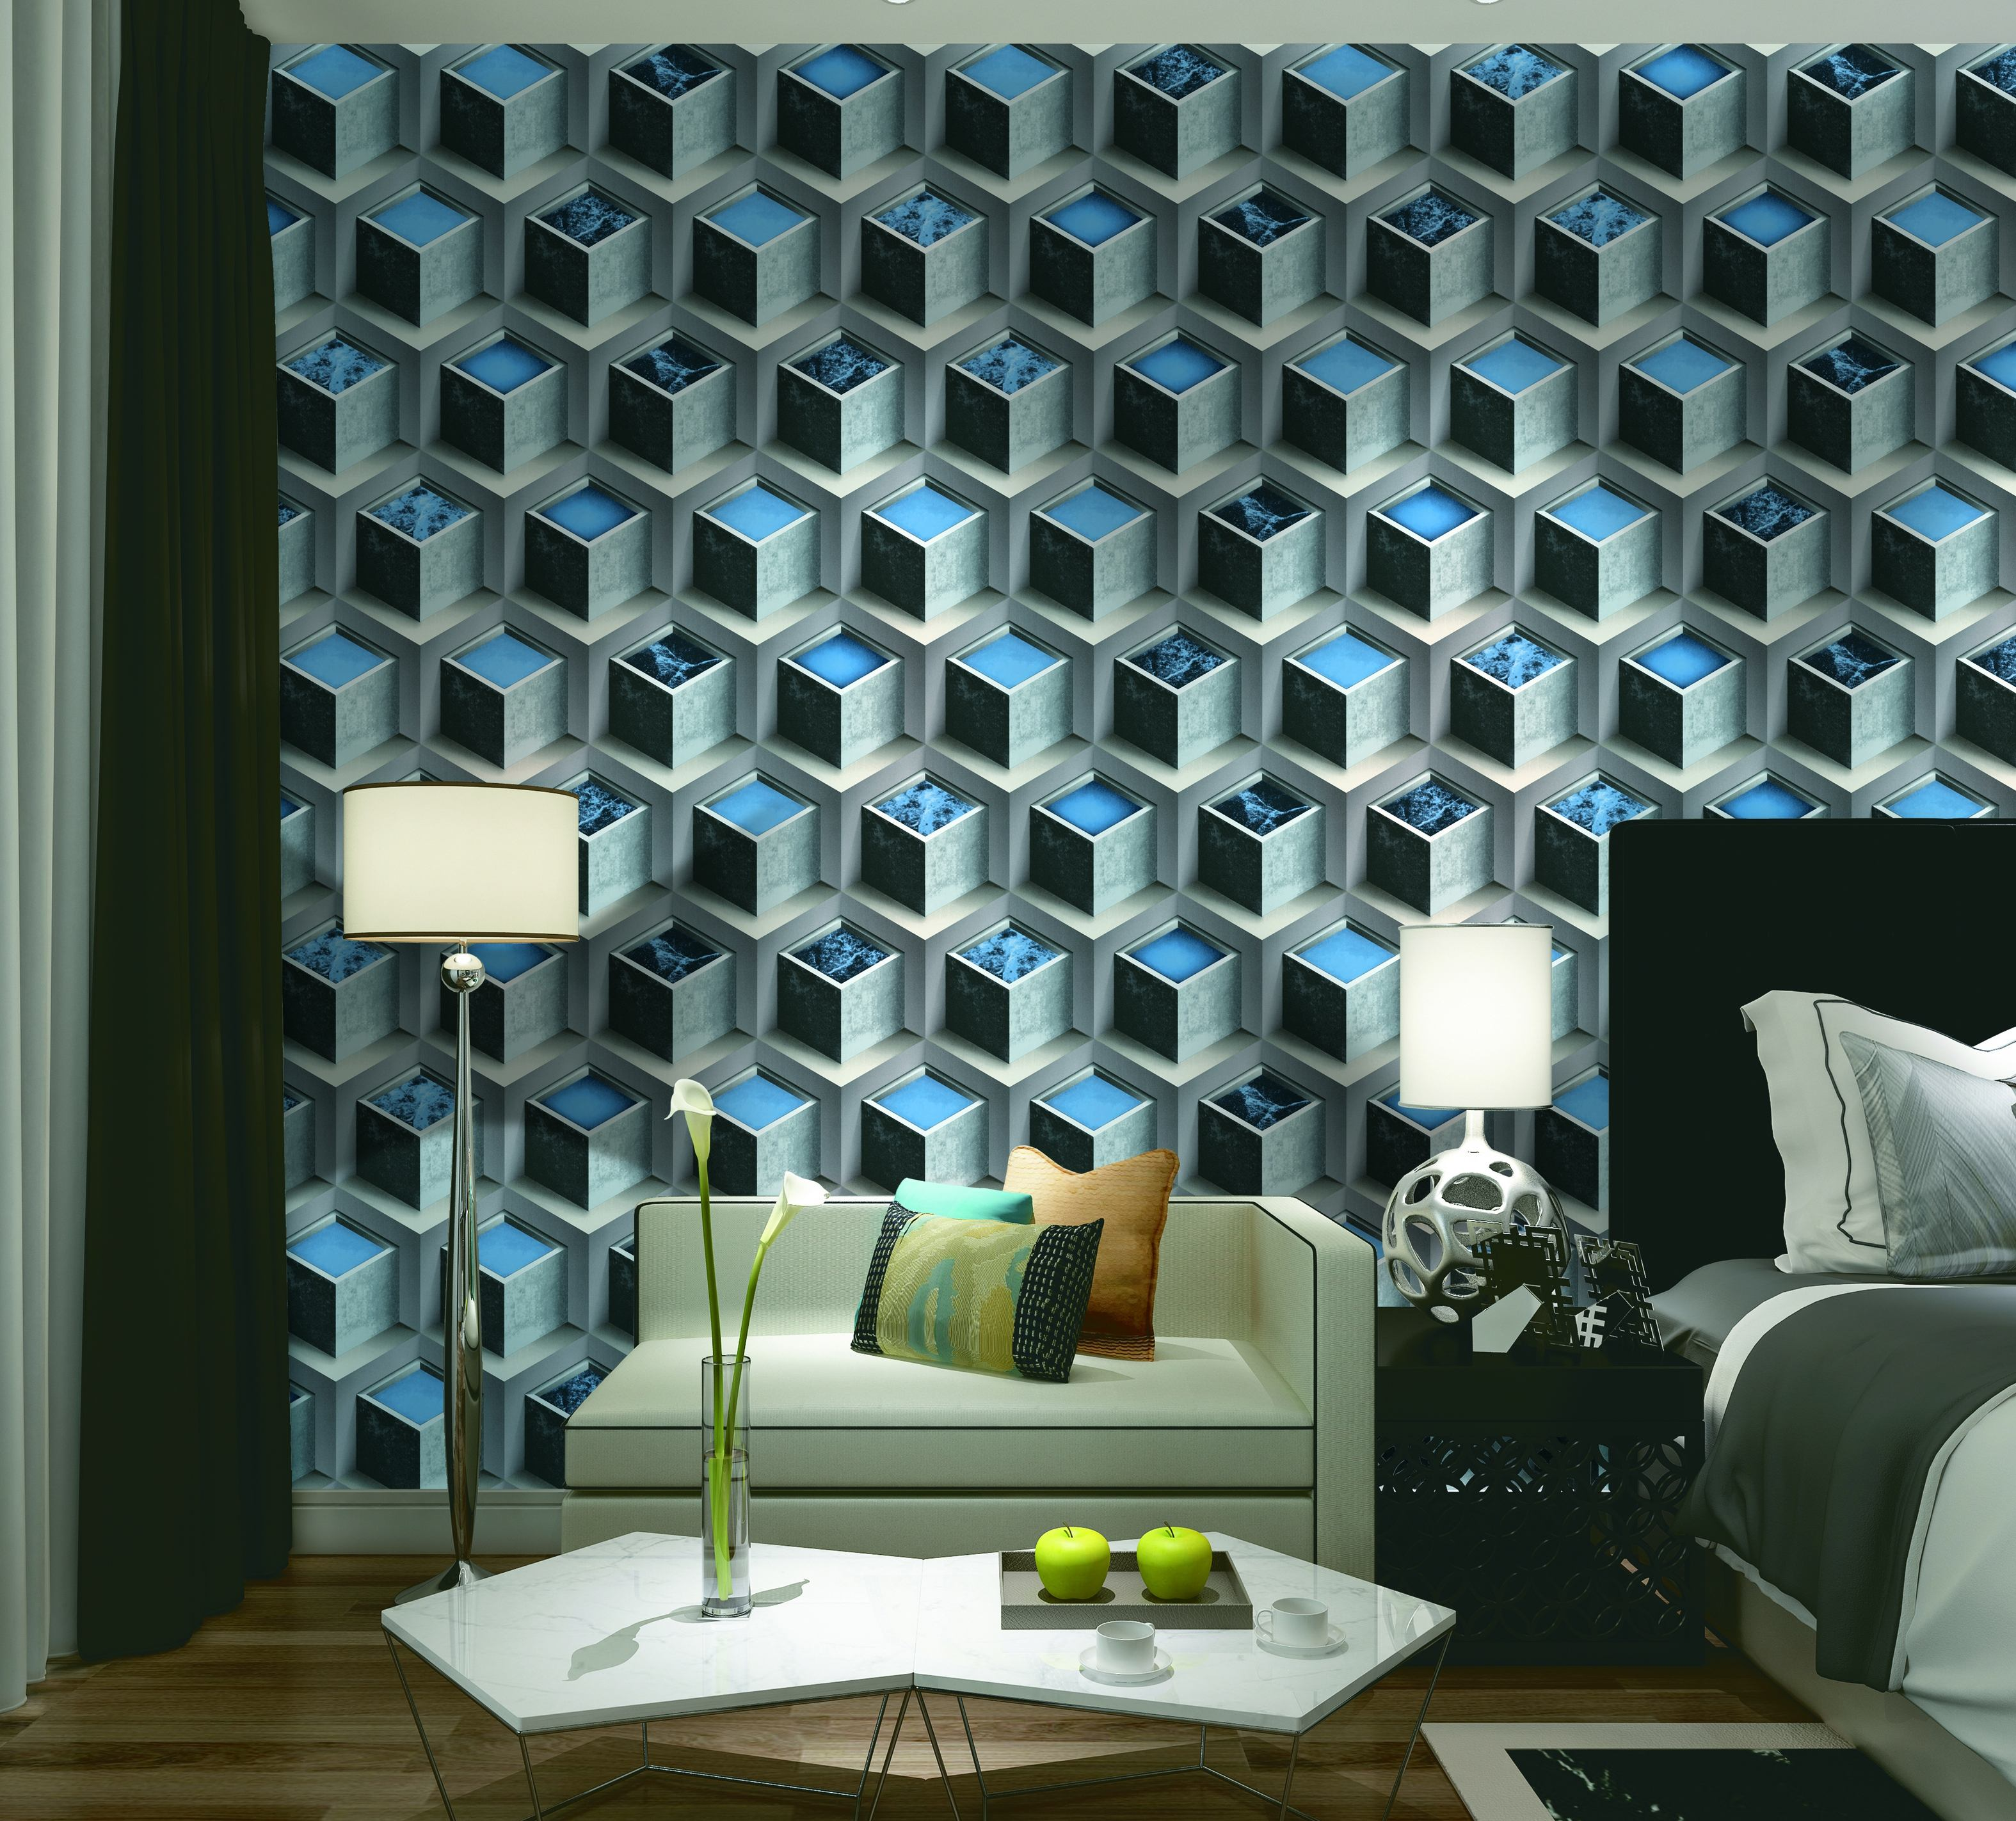 3D IMPORTED WALLPAPER FOR HOUSE RH-MC33077